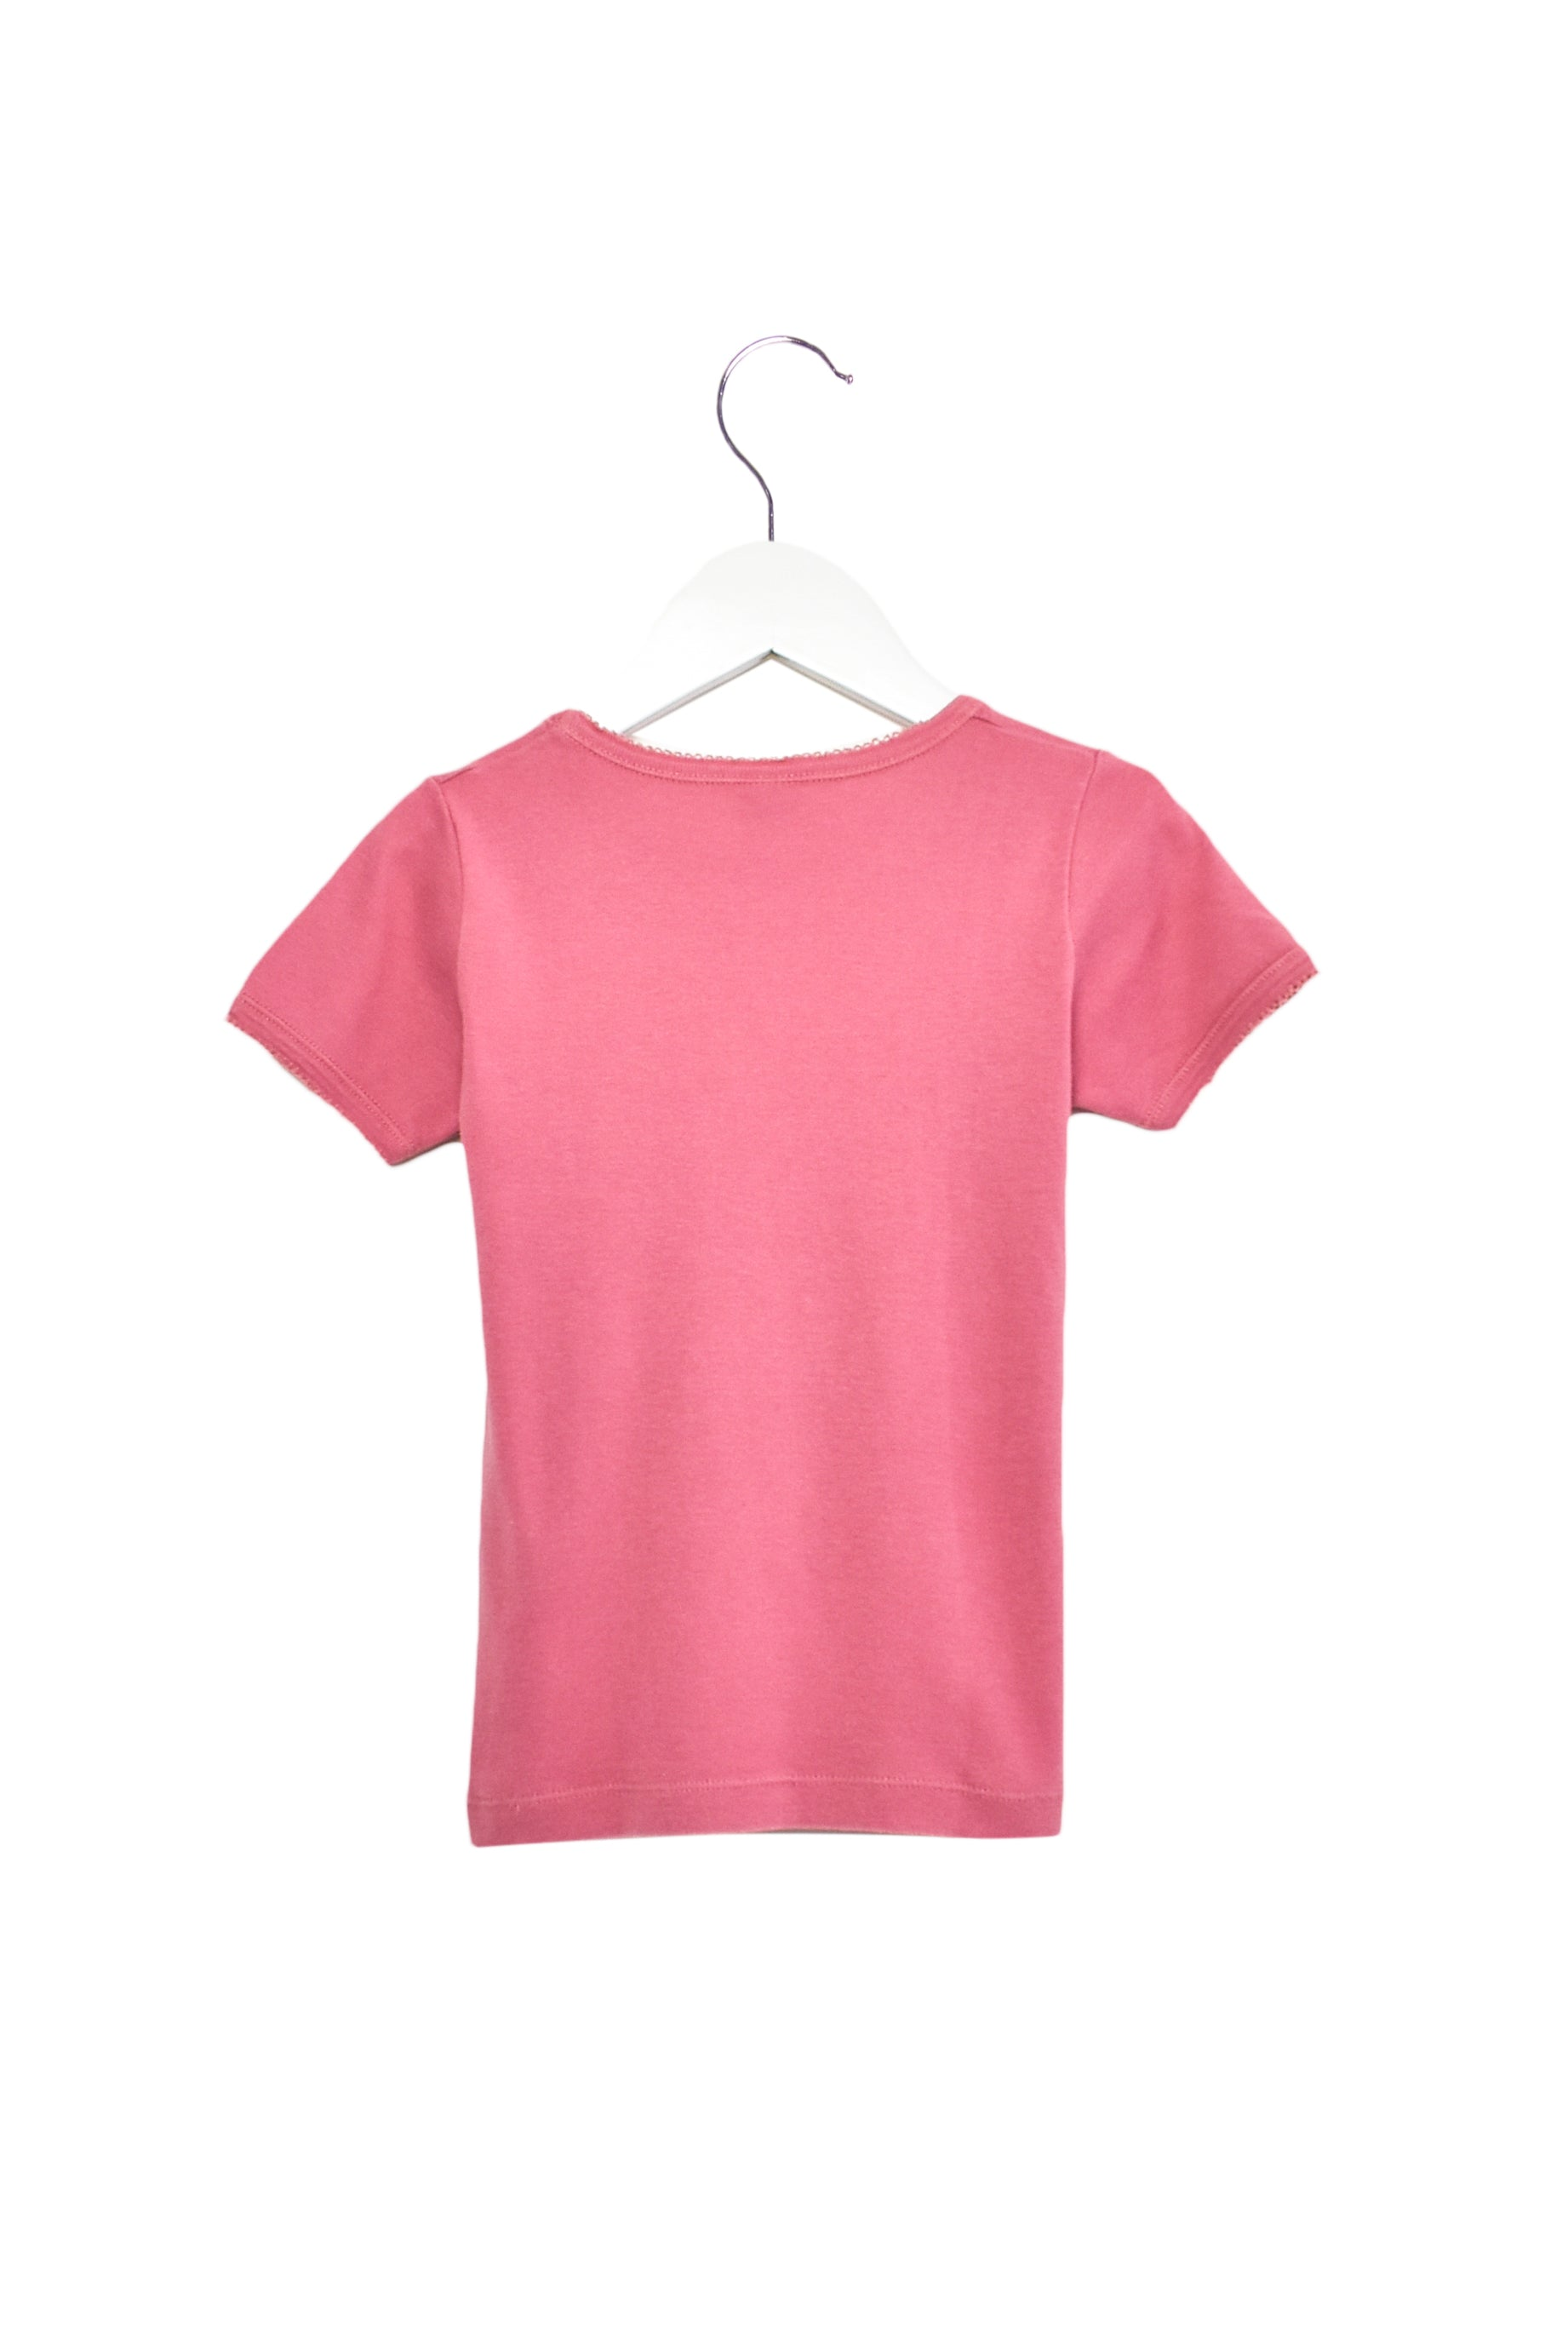 10011900 Petit Bateau Kids ~ T-Shirt 6T at Retykle